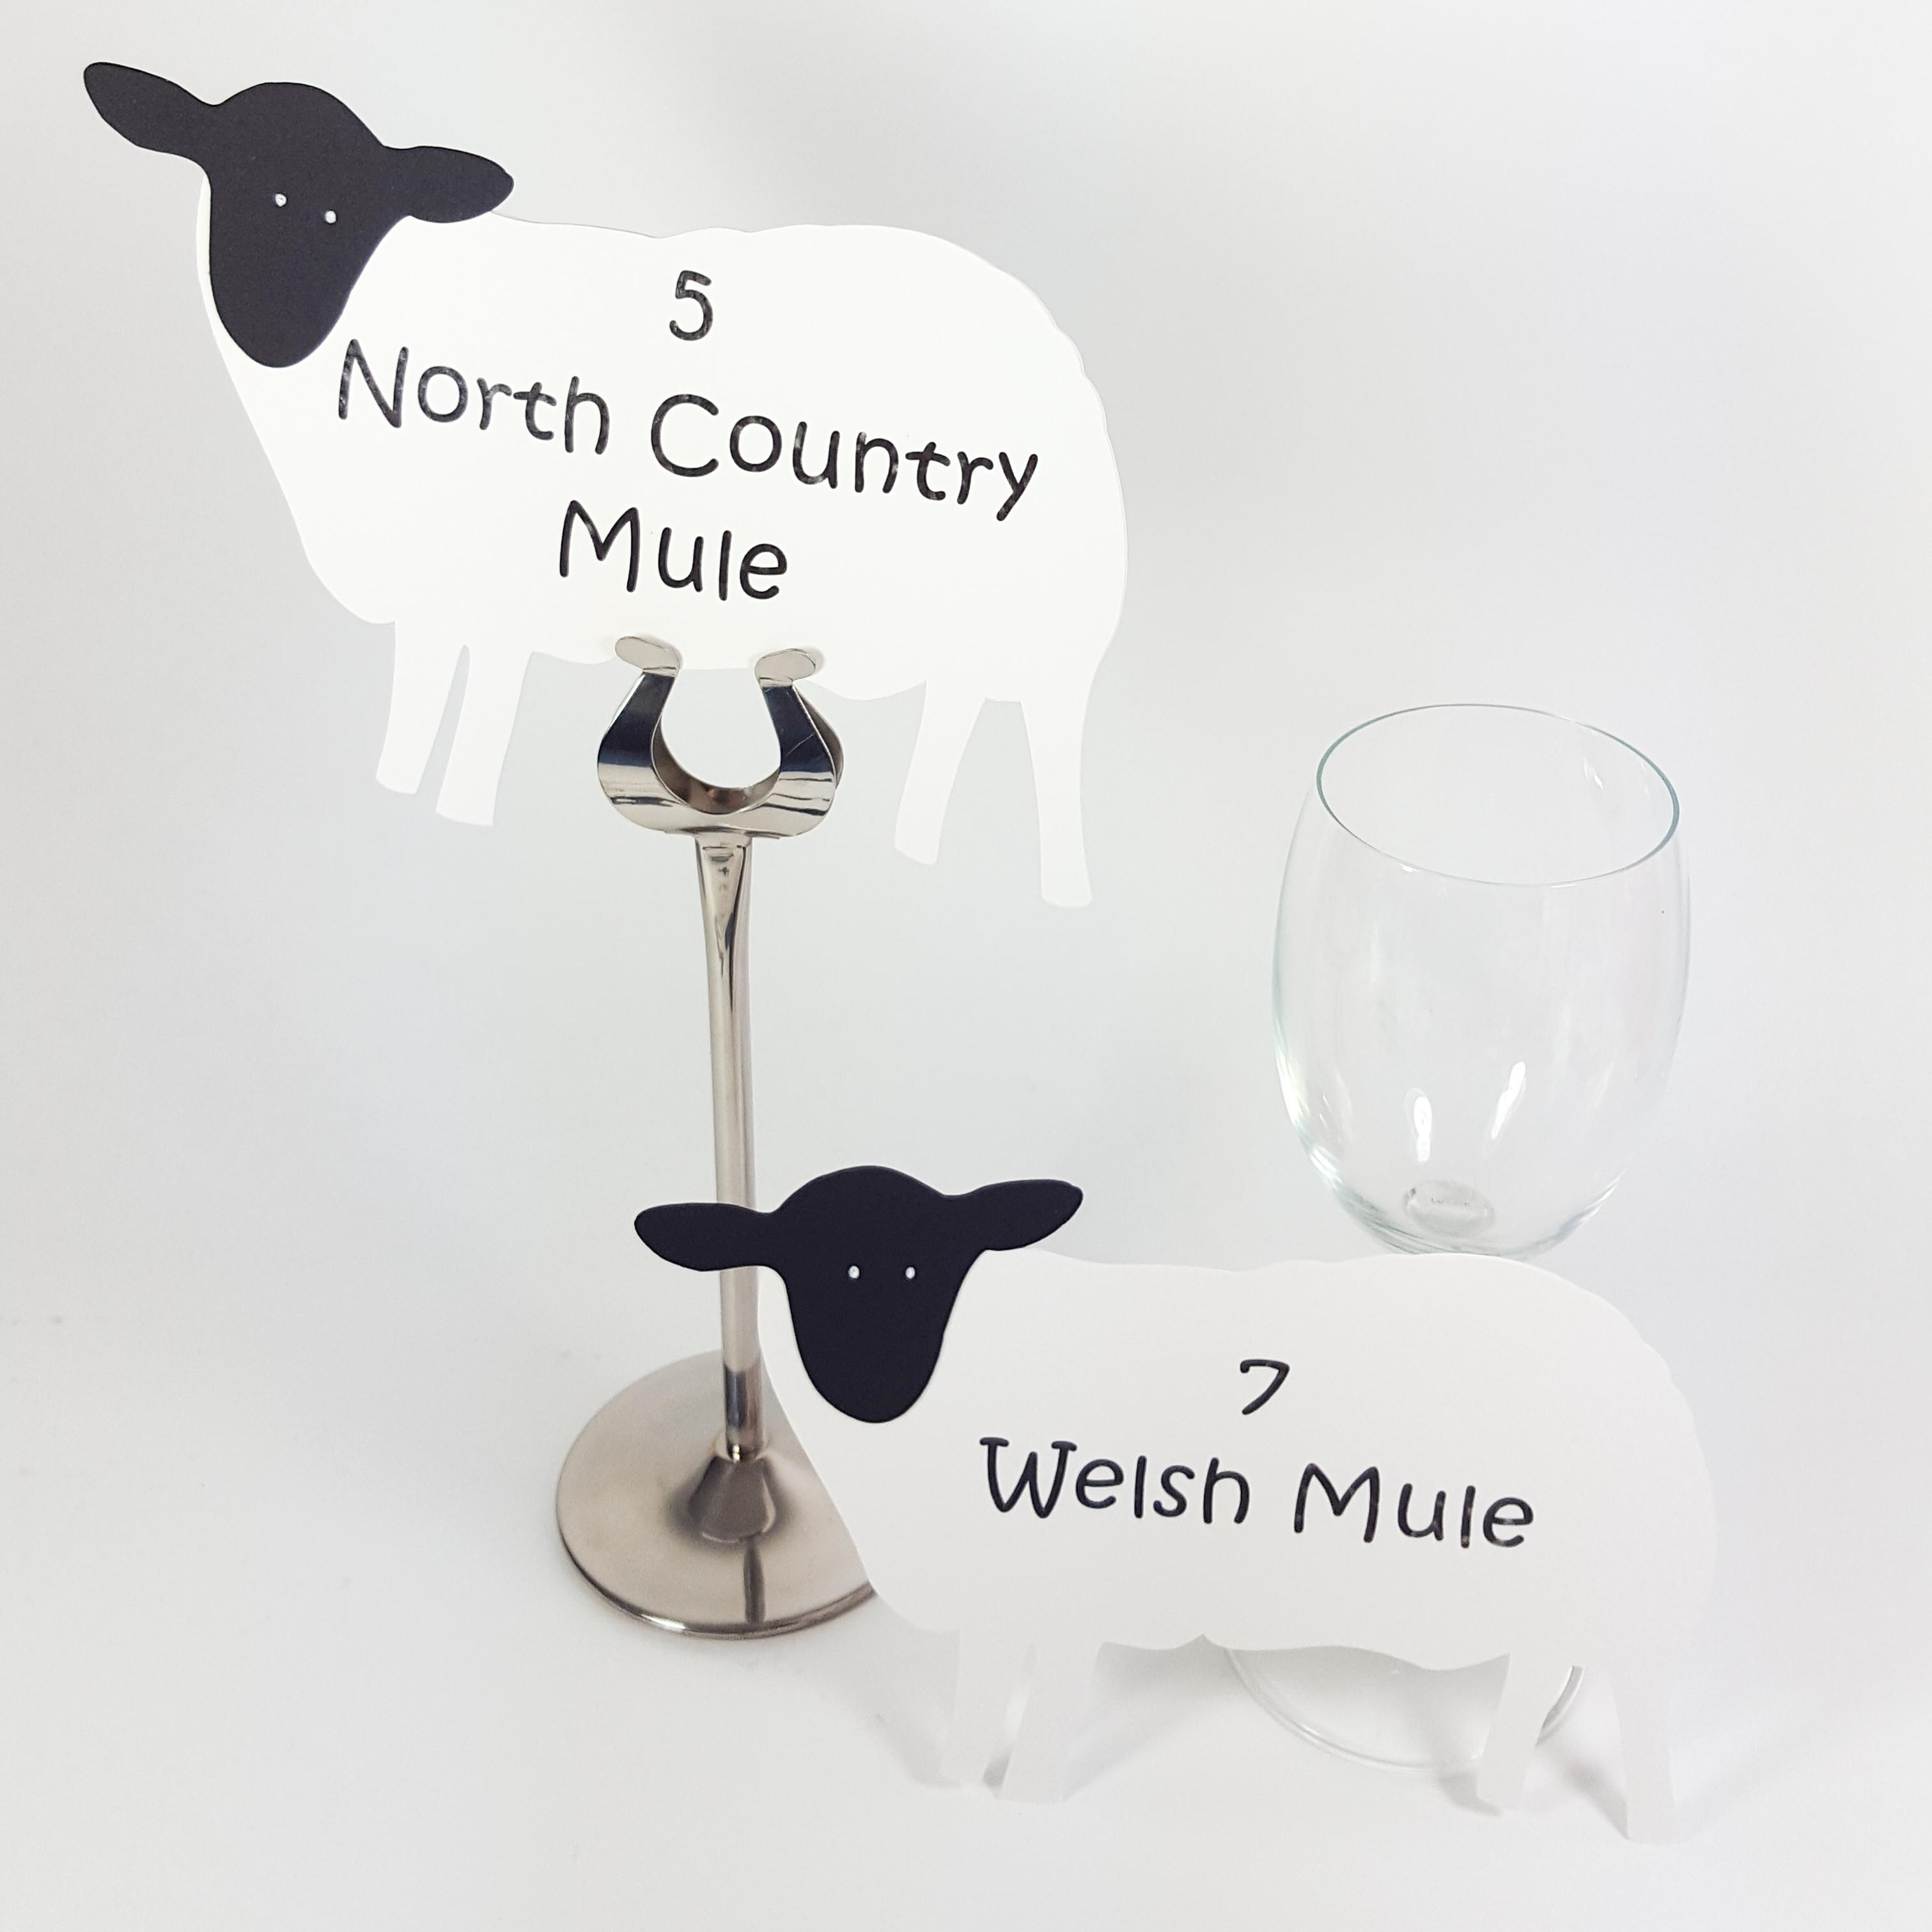 Sheep shaped table names and numbers